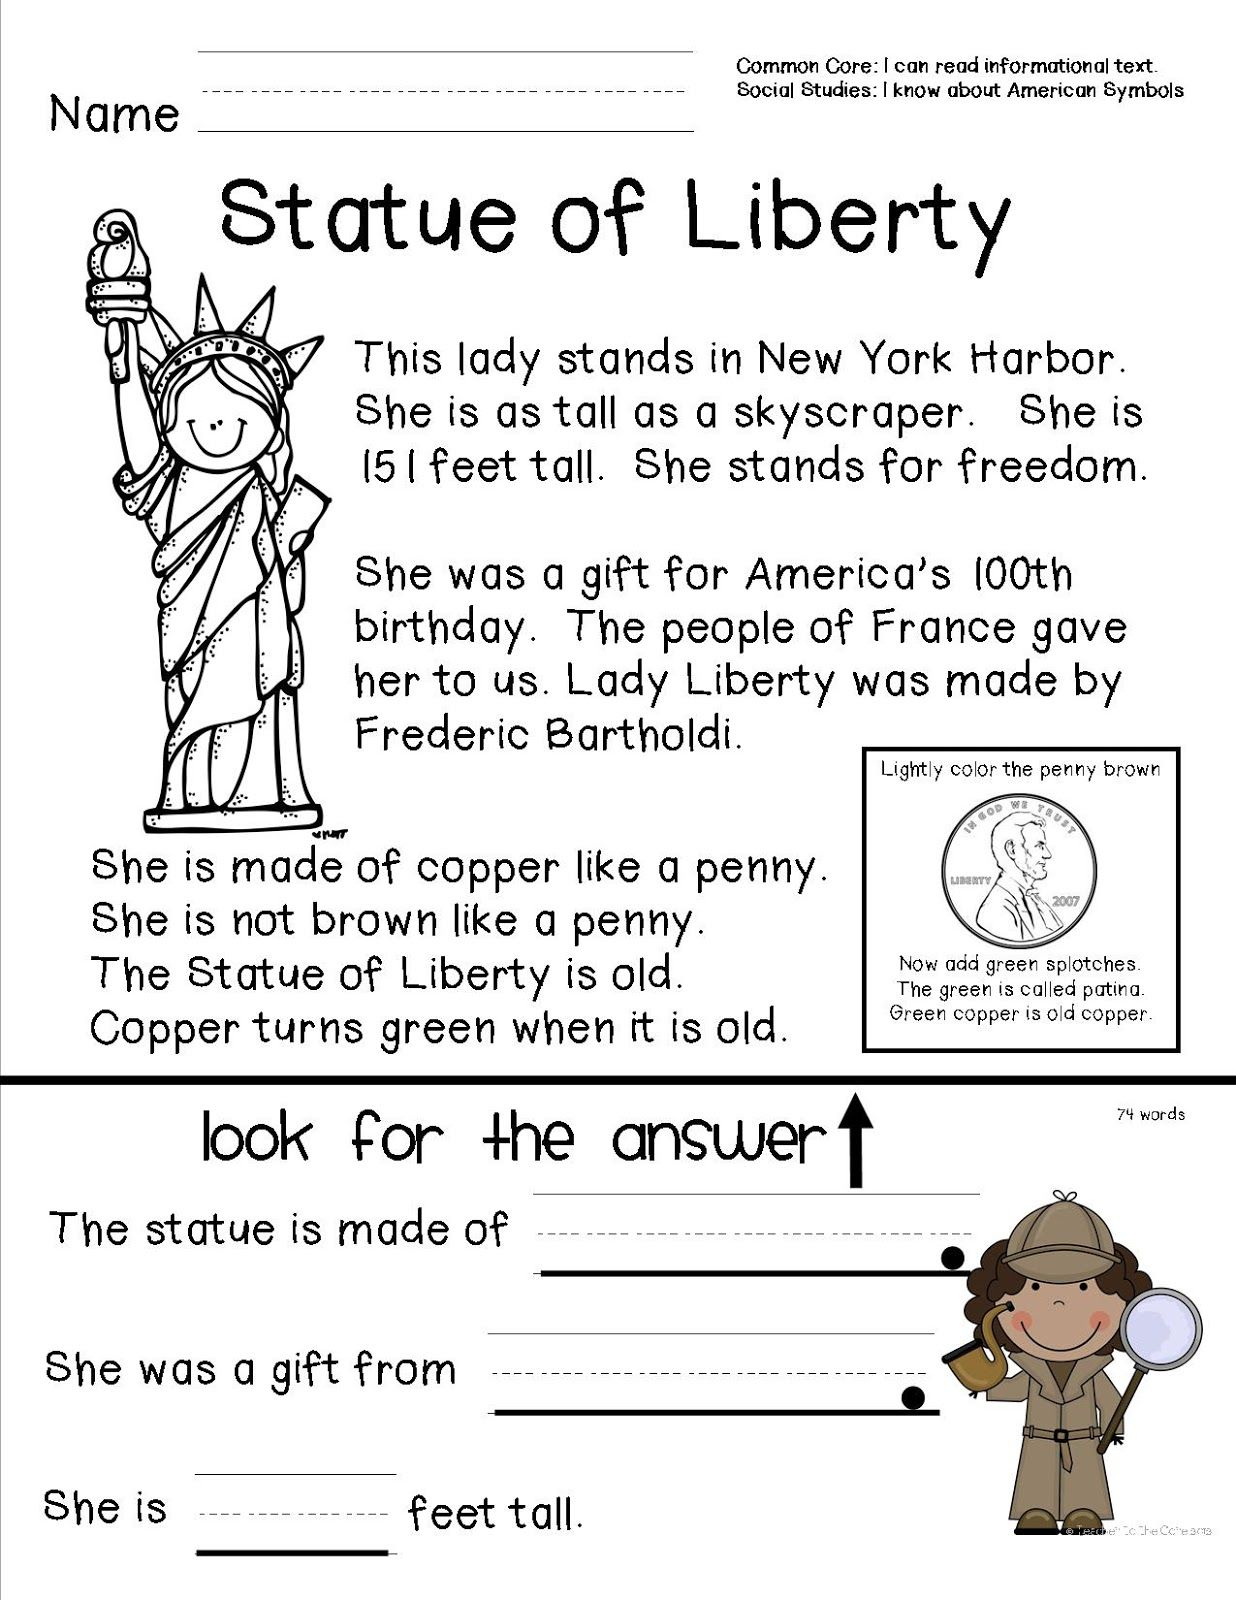 Reading Comprehension Sheet About The Statue Of Liberty For Primary - Social Studies Worksheets First Grade Free Printable